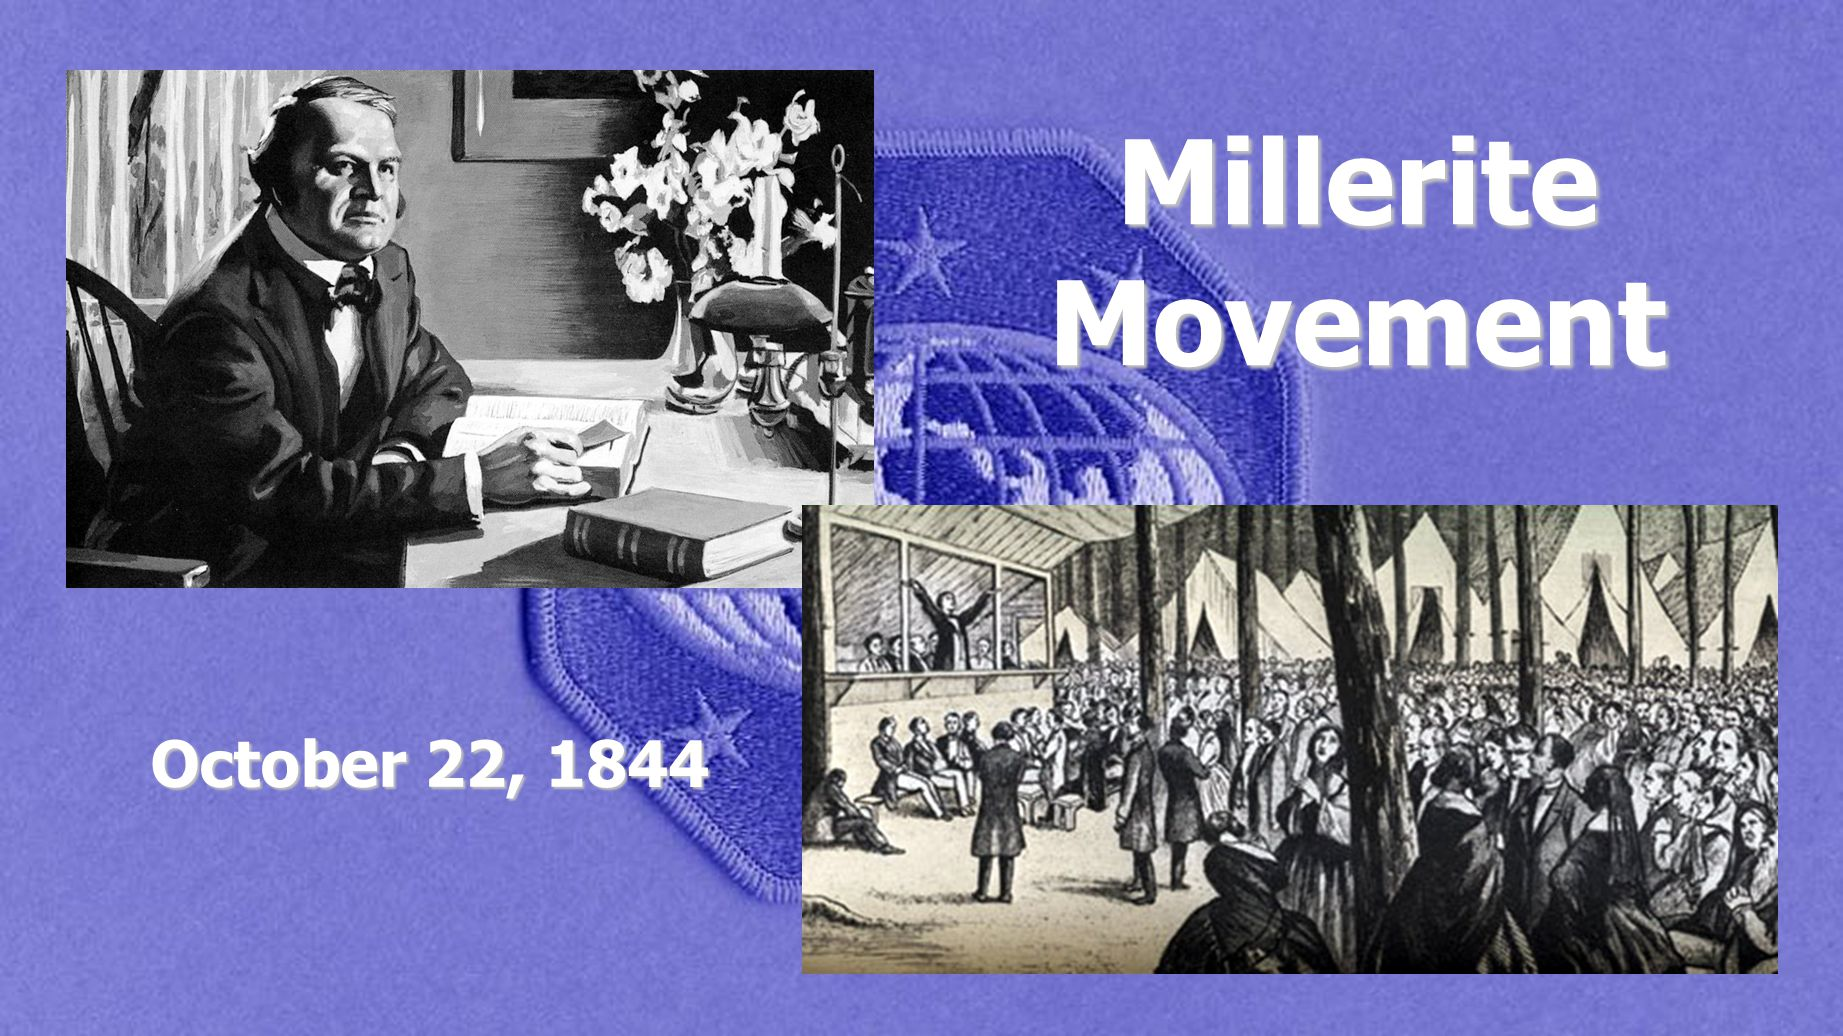 Millerite Movement October 22, 1844